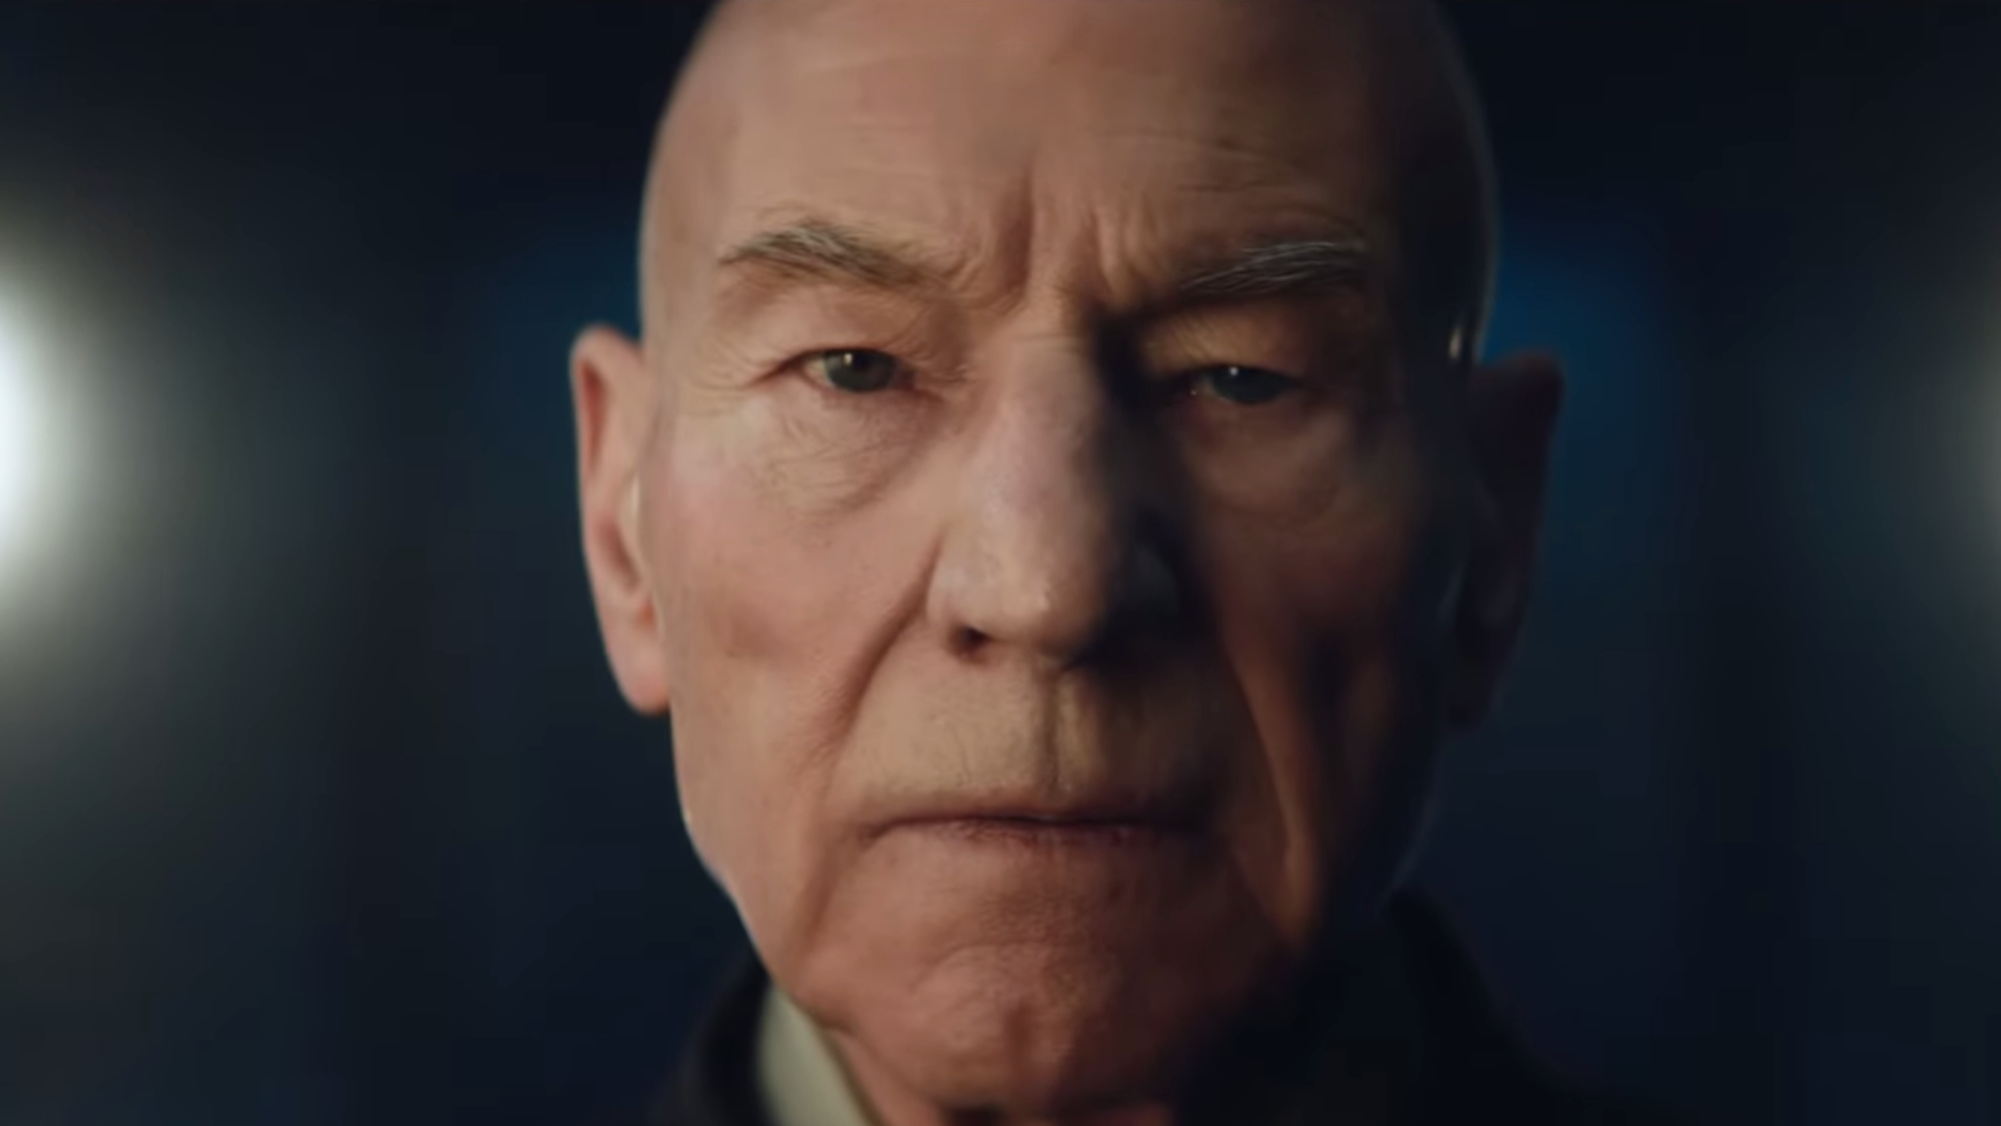 cbs cbs-all-access feature io9 jean-luc-picard patrick-stewart star-trek star-trek-picard streaming